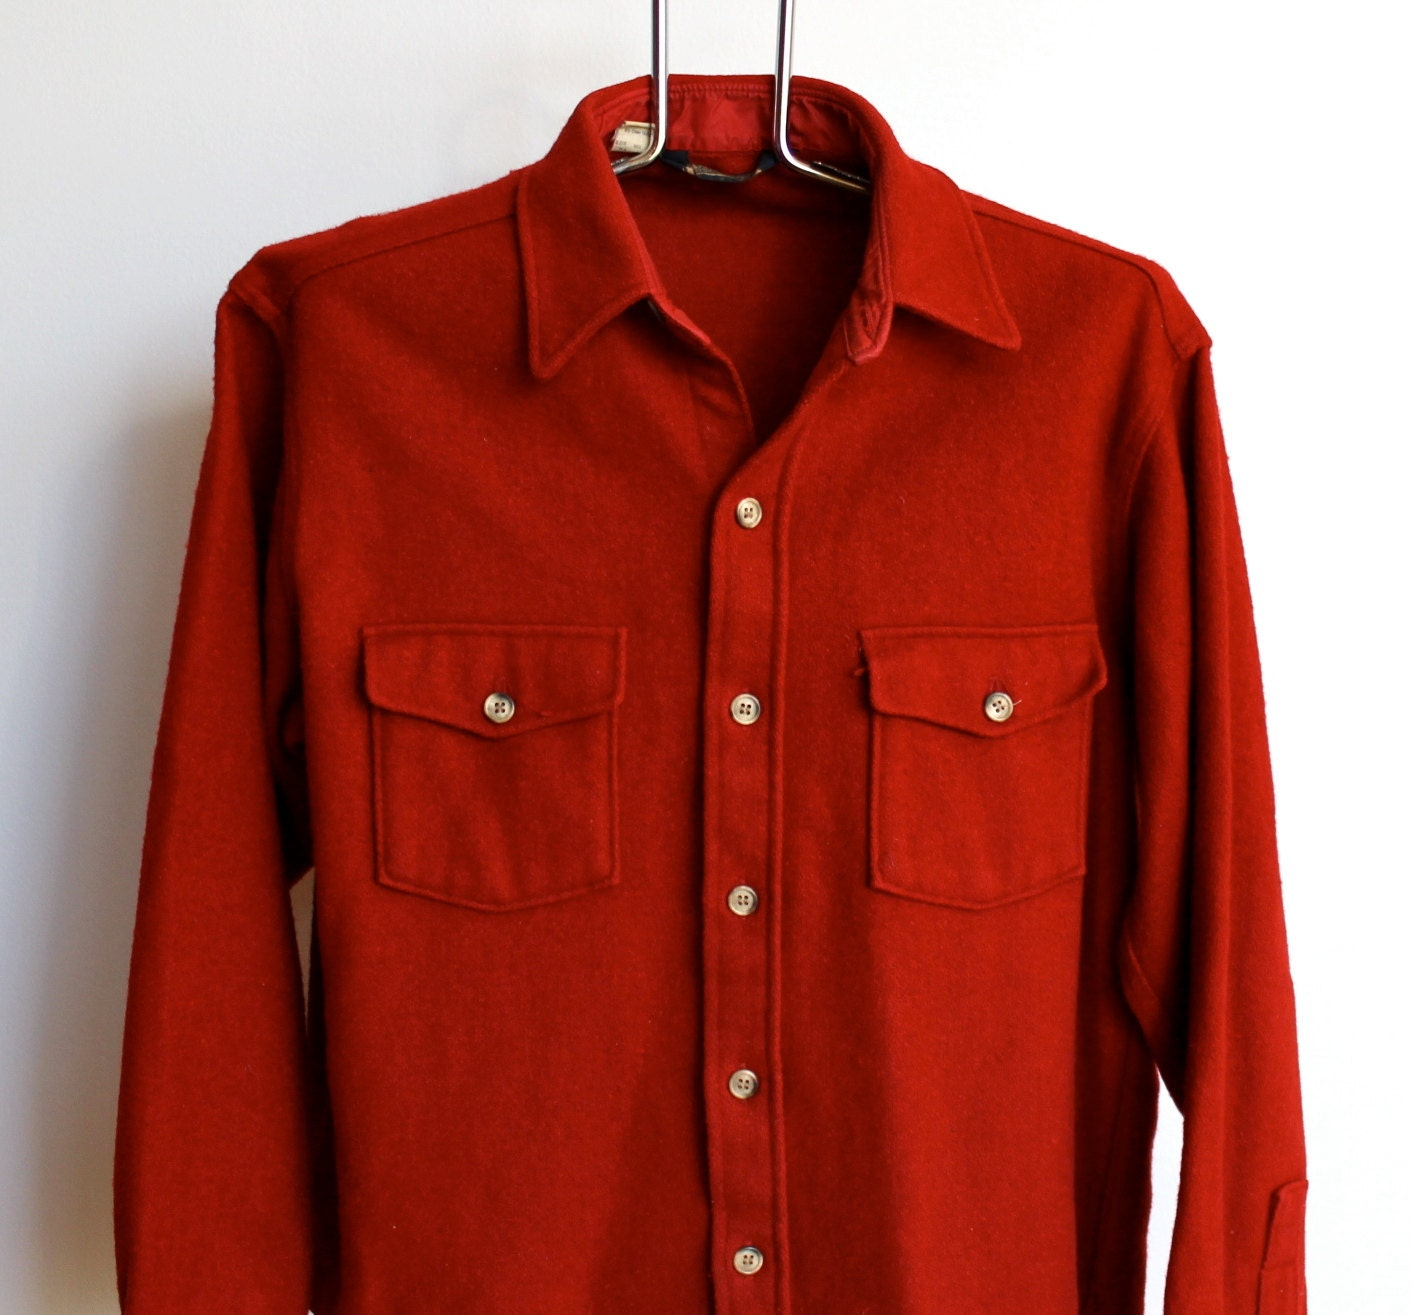 Mens Vintage Wool Blend Lands End Shirt Size Medium Red 70s